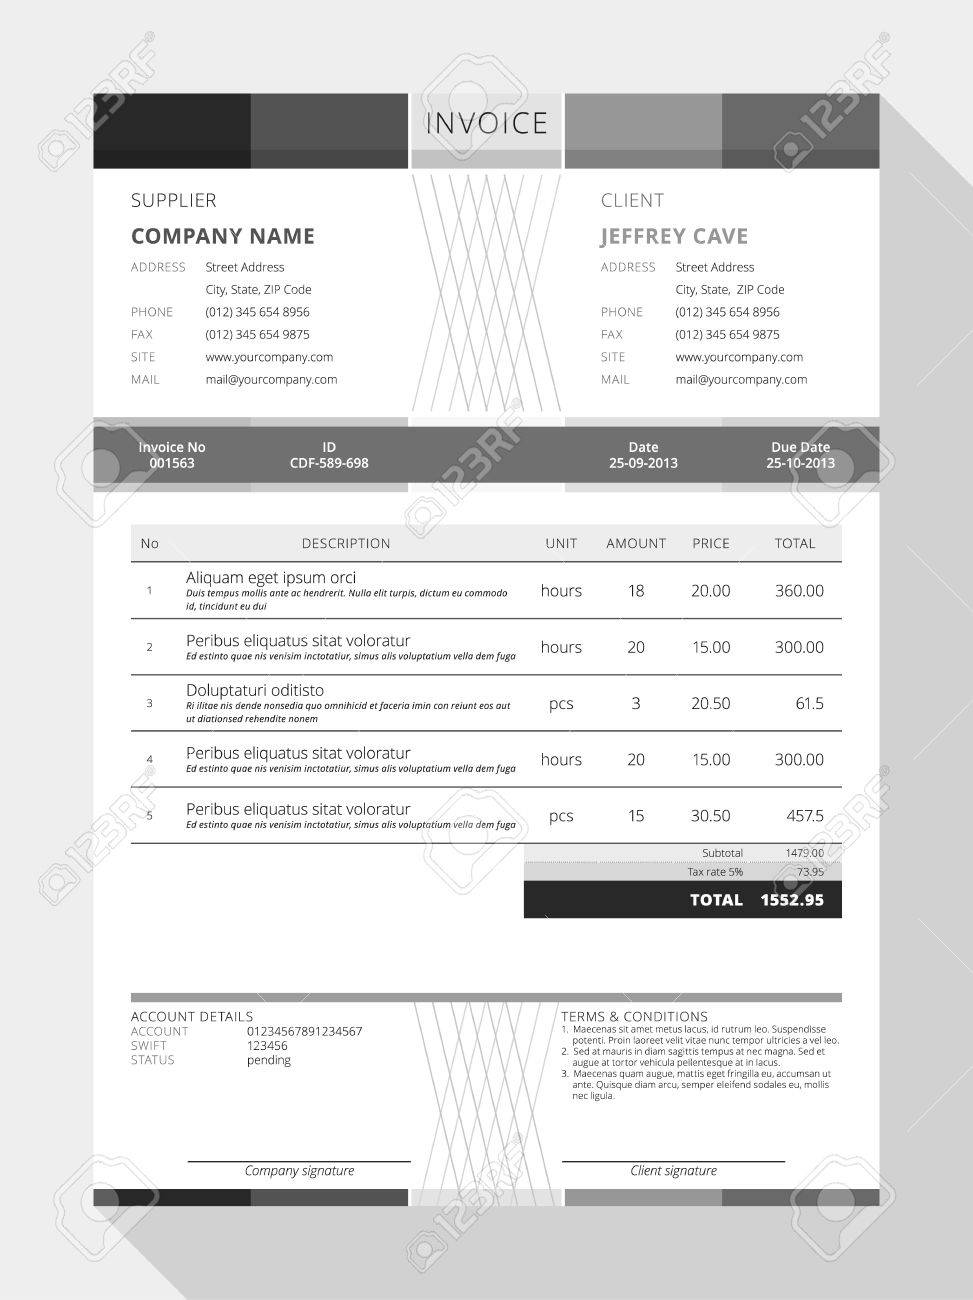 Coolmathgamesus  Unusual Design An Invoice  Professional Graphic Design Invoice  With Engaging Vector Customizable Invoice Form Template Design Vector   Design An Invoice With Appealing Receipt For Salmon Also Donation Receipt Letter Template In Addition Irs Receipts And Tmtv Pos Receipt Printer As Well As Paypal Receipts Additionally Receipt Envelopes From Happytomco With Coolmathgamesus  Engaging Design An Invoice  Professional Graphic Design Invoice  With Appealing Vector Customizable Invoice Form Template Design Vector   Design An Invoice And Unusual Receipt For Salmon Also Donation Receipt Letter Template In Addition Irs Receipts From Happytomco